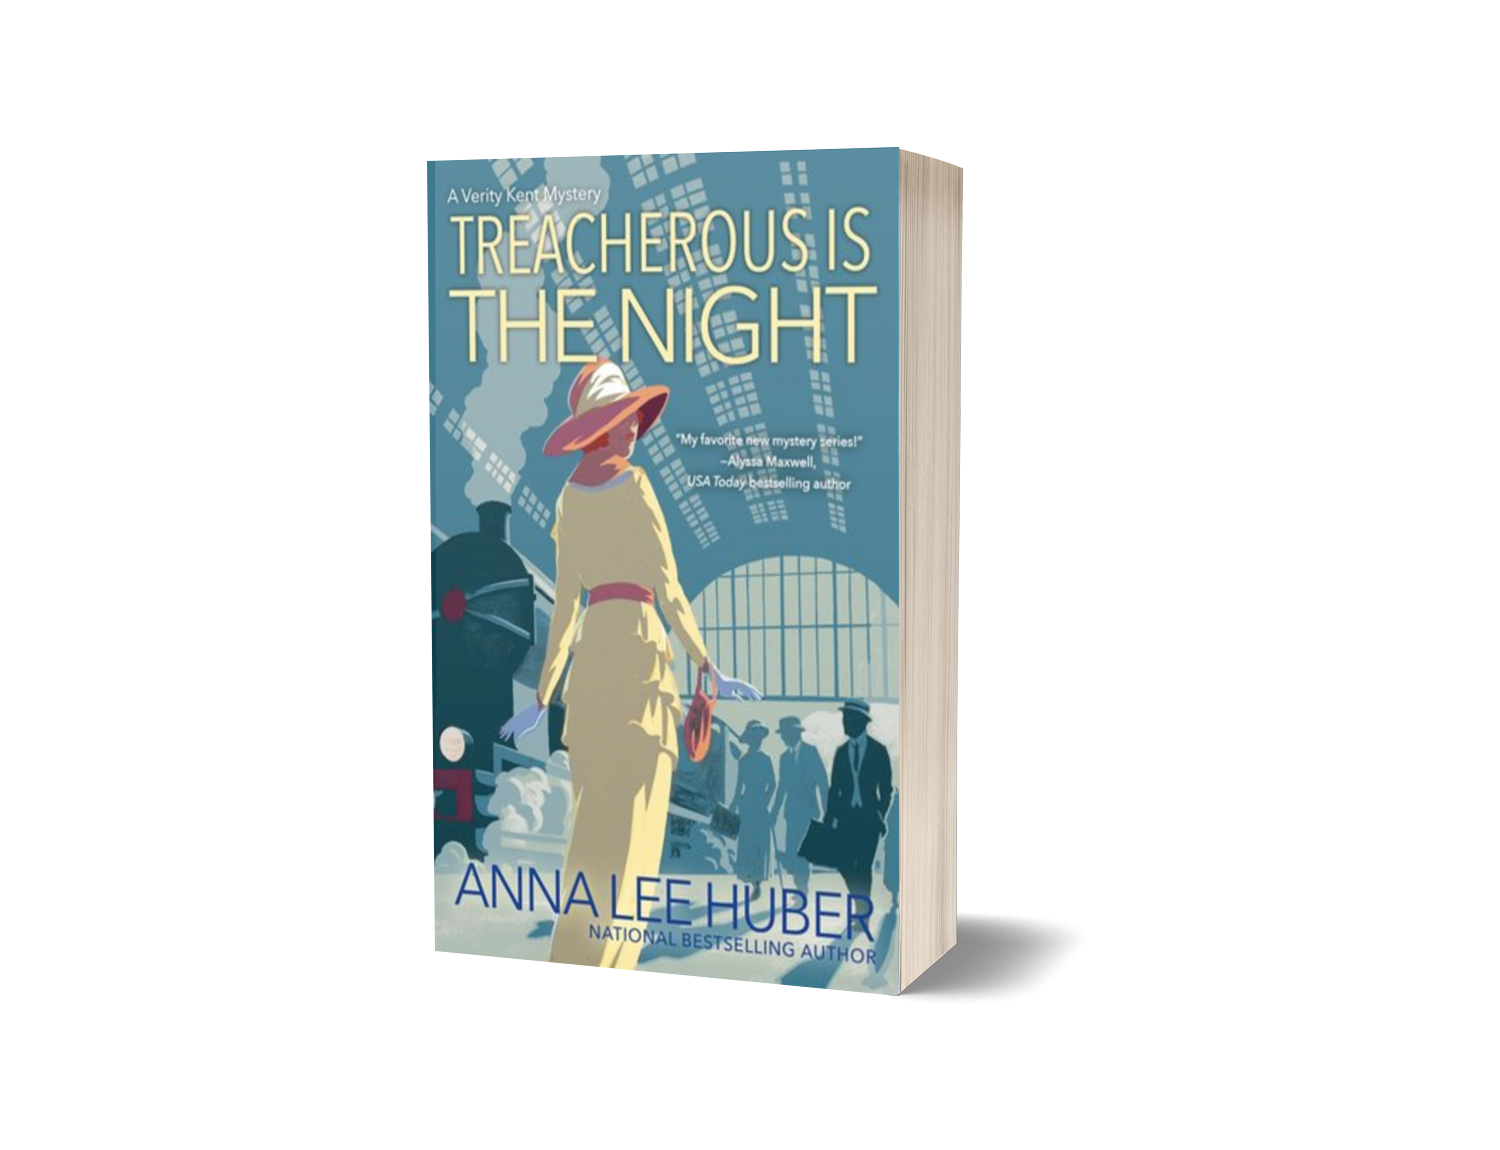 Thanks to NetGalley and the publisher for the ARC.  TREACHEROUS IS THE NIGHT (September 25th 2018 by Kensington Publishing Corporation) by Anna Lee Huber is the second novel in the Verity Kent Mystery series.  Verity Kent is reluctantly attending a séance when the medium passes along a purported message from one of the spies she worked with during the Great War. When the medium dies in a mysterious fire the next day, Verity decides that she must travel to Belgium to seek out her former associate, Emilie. Despite his reluctance to return to the scene of the war - and the fragile state of their marriage - Verity's recently returned husband, Sidney, agrees to accompany Verity on her mission. With help from some of her former associates in the Secret Service, Verity transverses the war torn country as she follows clues and narrowly escapes assassins.  TREACHEROUS IS THE NIGHT is a magnificent follow up to THIS SIDE OF MURDER. The second novel picks up a few weeks after the first one ended, and it continues with the reconciliation between Verity and Sidney. Their relationship is in a very fragile state, and they spend the novel reconciling and getting to known each other again. Their marriage is a wonderful portrayal of the countless relationships that were affected by the war.  The reader also learn much more about Verity's assignments with the Secret Service during the Great War - particularly work she did with the intelligence network known as La Dame Blanche, as well as her collaborations with an agent who was working undercover in the German army. The more I learn about Verity's secret war work, the more fascinating she becomes.  Huber also brings the characters, the locations, and the time period to life through her rich prose. The imagery that Huber creates within the novel is intensely vivid and descriptive. It is clear that she did a lot of research into... well, everything related to the Great War and the aftermath. Huber portrays the repercussions of the Great War, and the toll it took on the people and the landscape, in a very realistic and sympathetic manner. The reader gets to experience Sidney's anguish as he returns to the Western Front, as well as the suffering of the people of Belgium and France who lived near the trenches. The Great War may have ended, but it will take a long time for the people and places to recover and repair from the devastation.